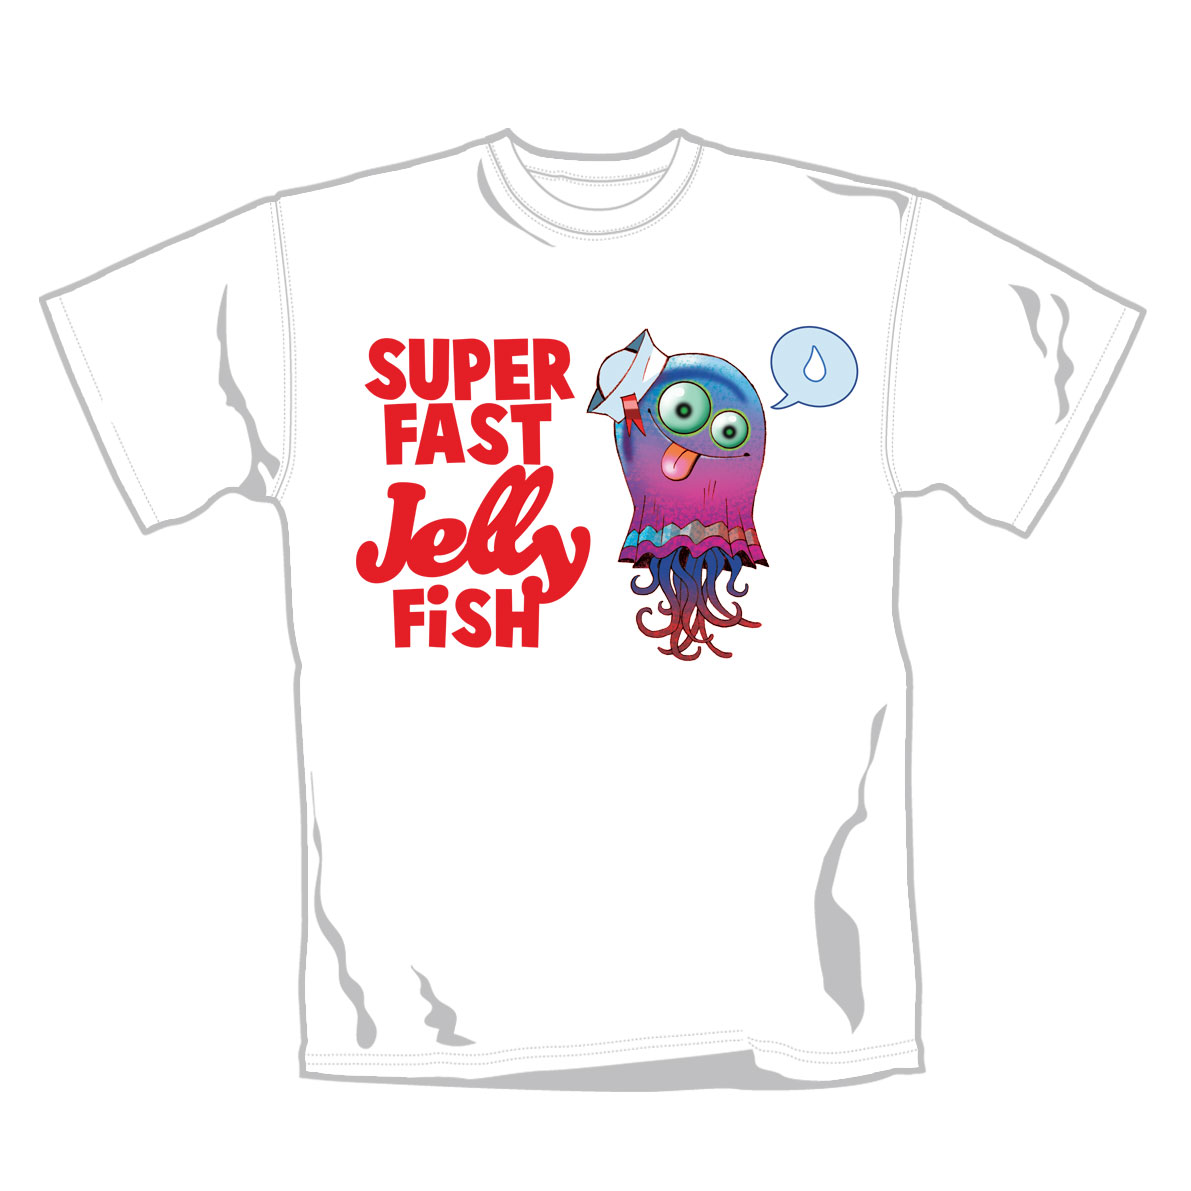 Gorillaz T Shirt Jellyfish. Emi Music officially licensed t-shirt.